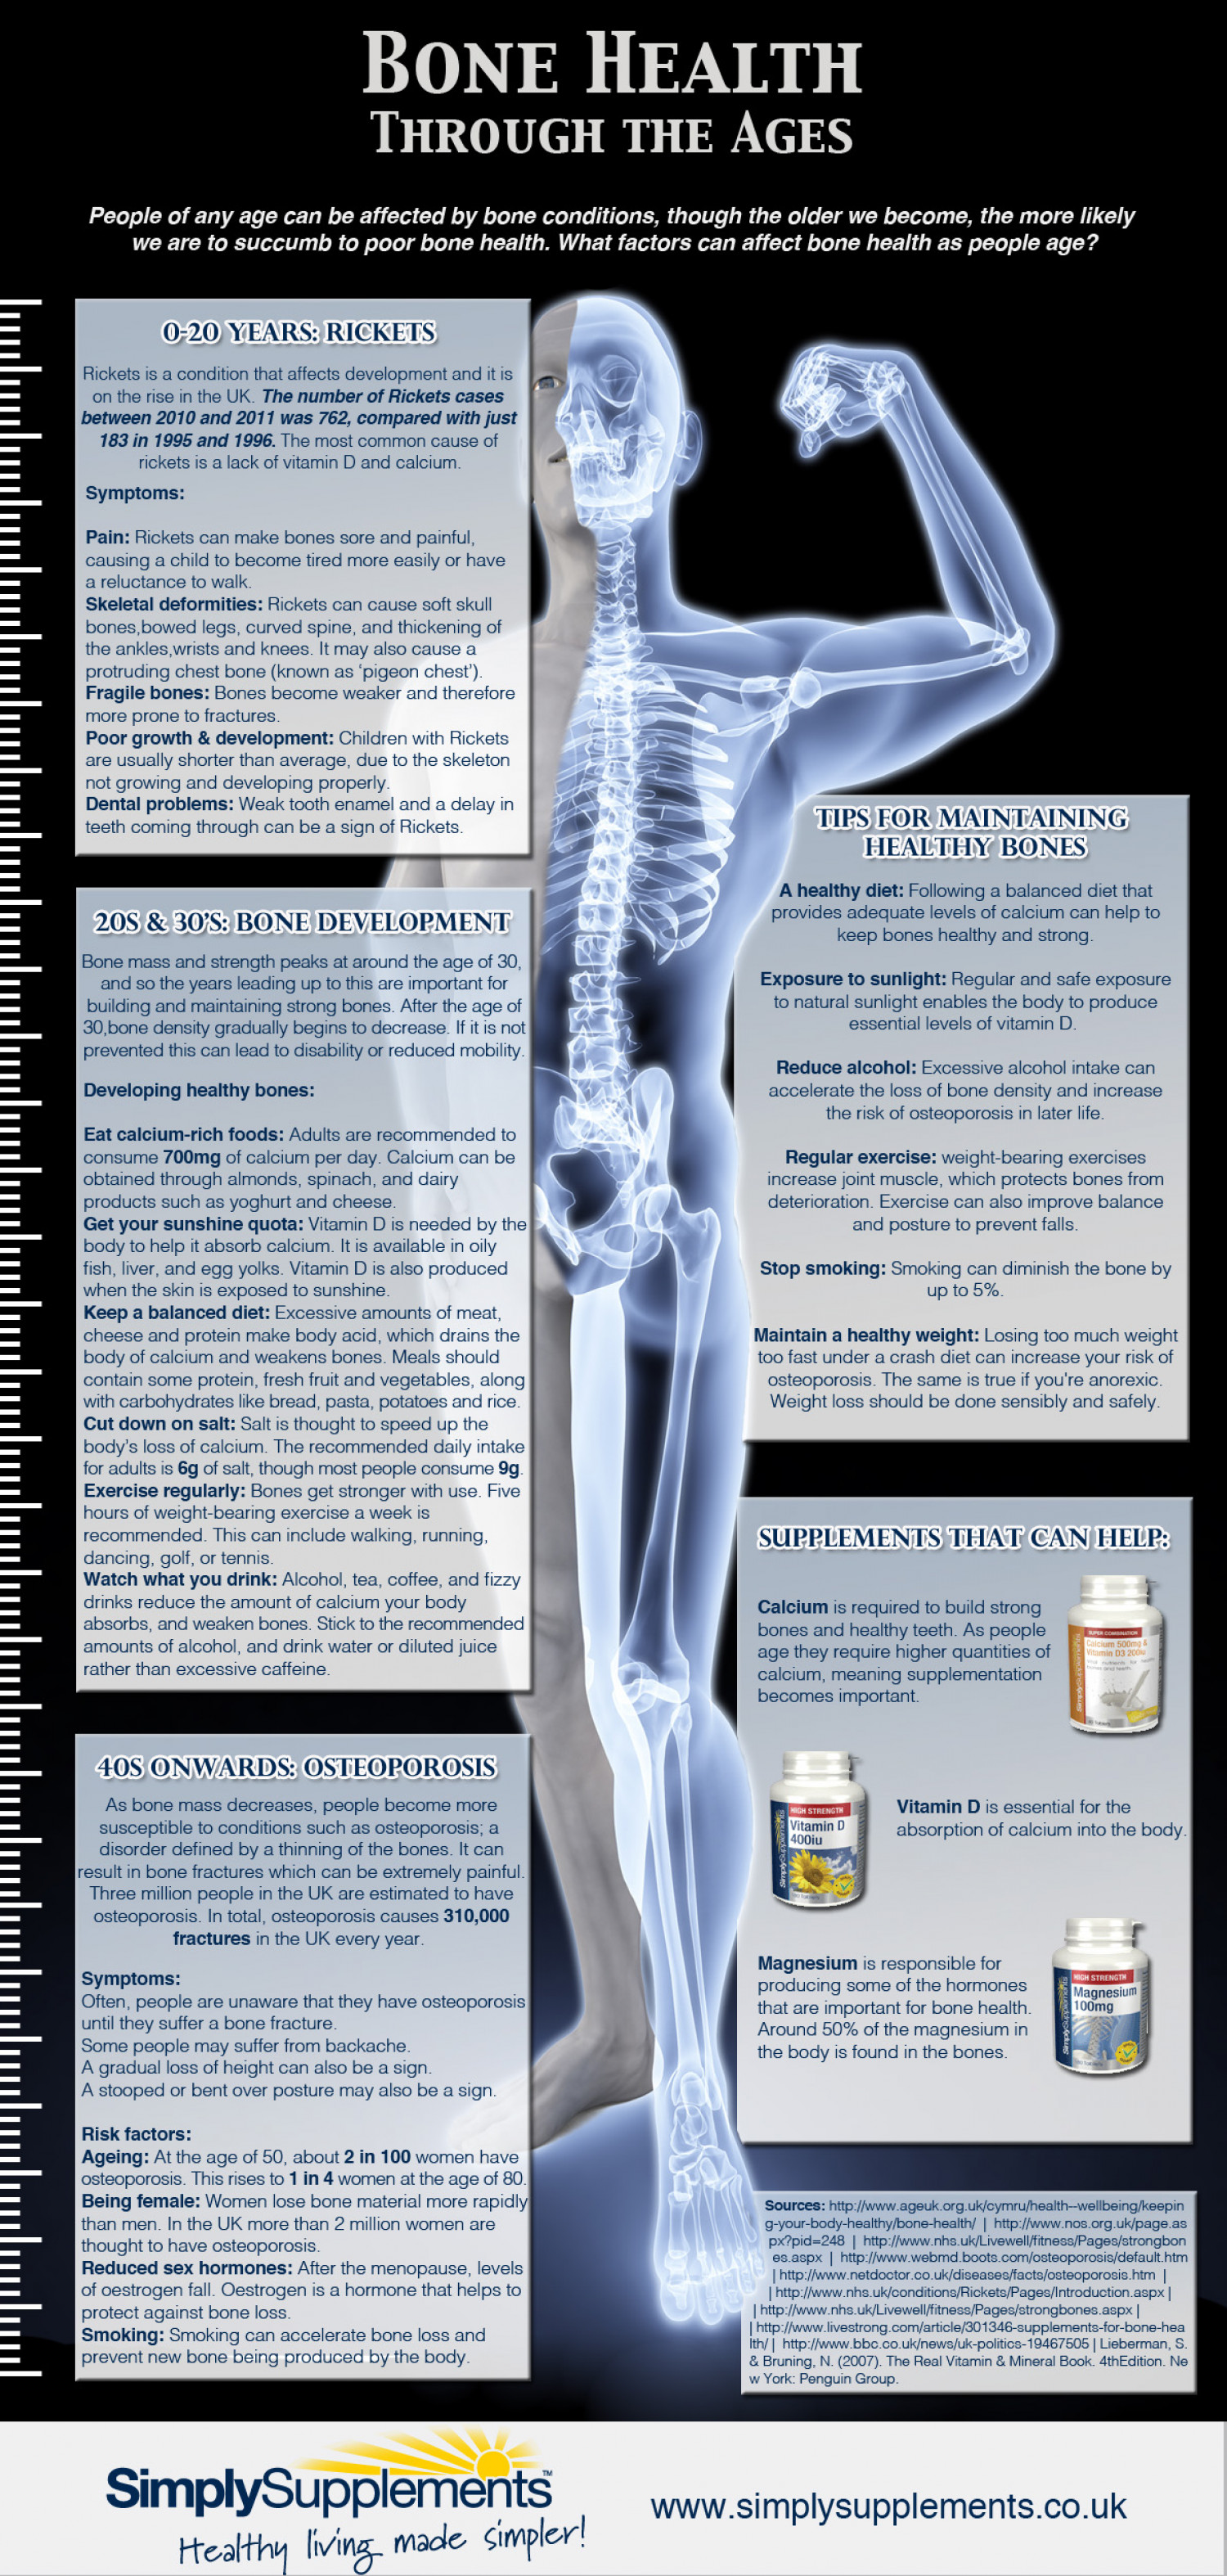 Bone Health Through The Ages Infographic